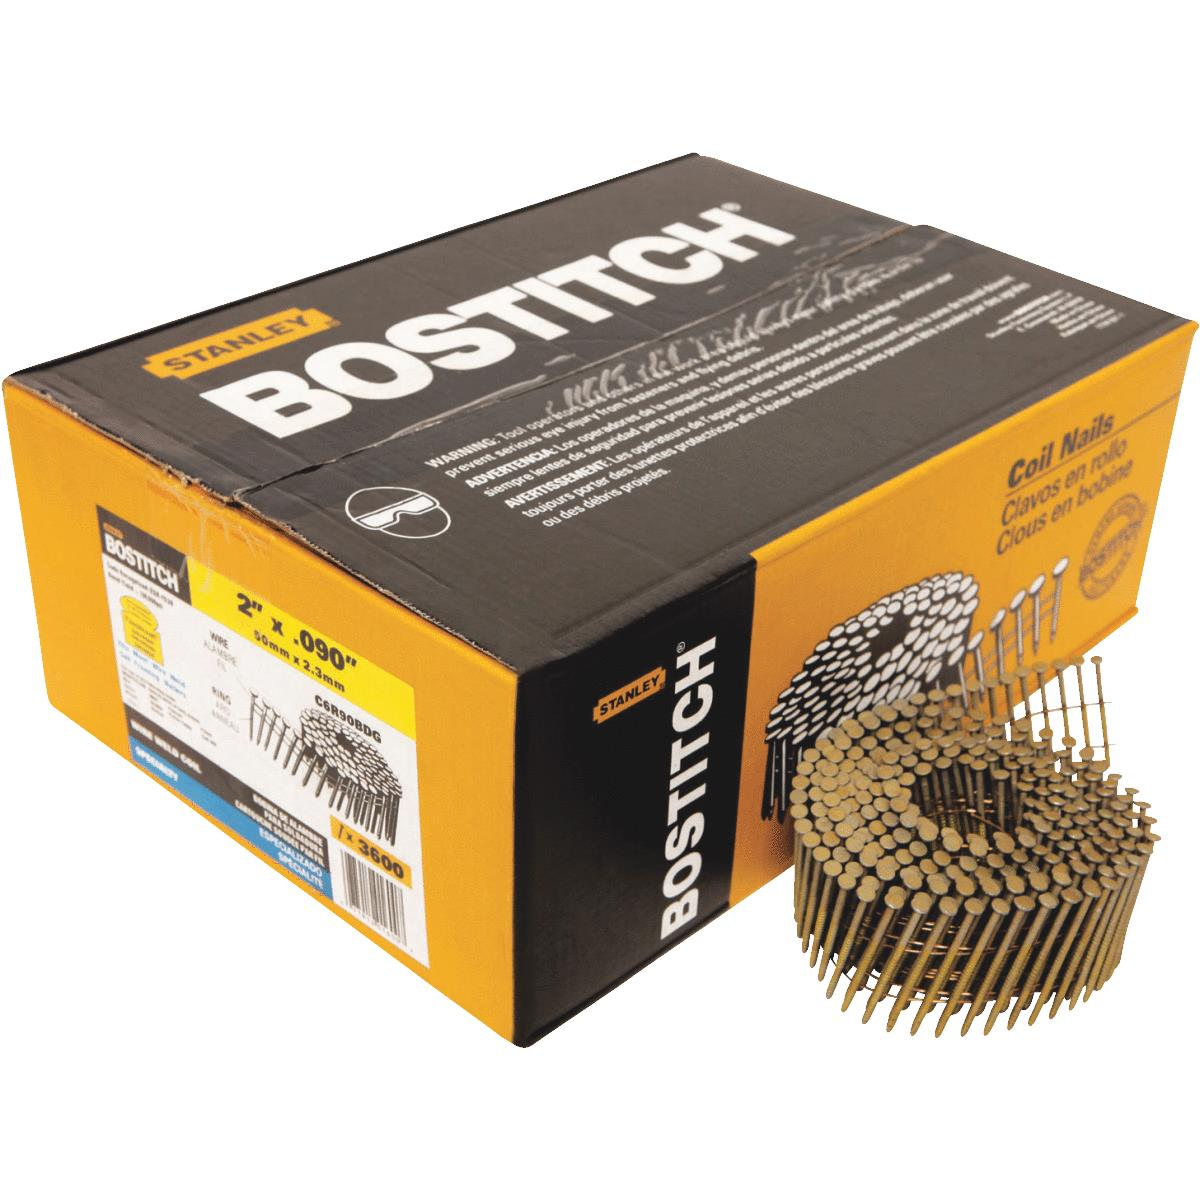 Bostitch 15 Degree Wire Weld Coil Siding Nail